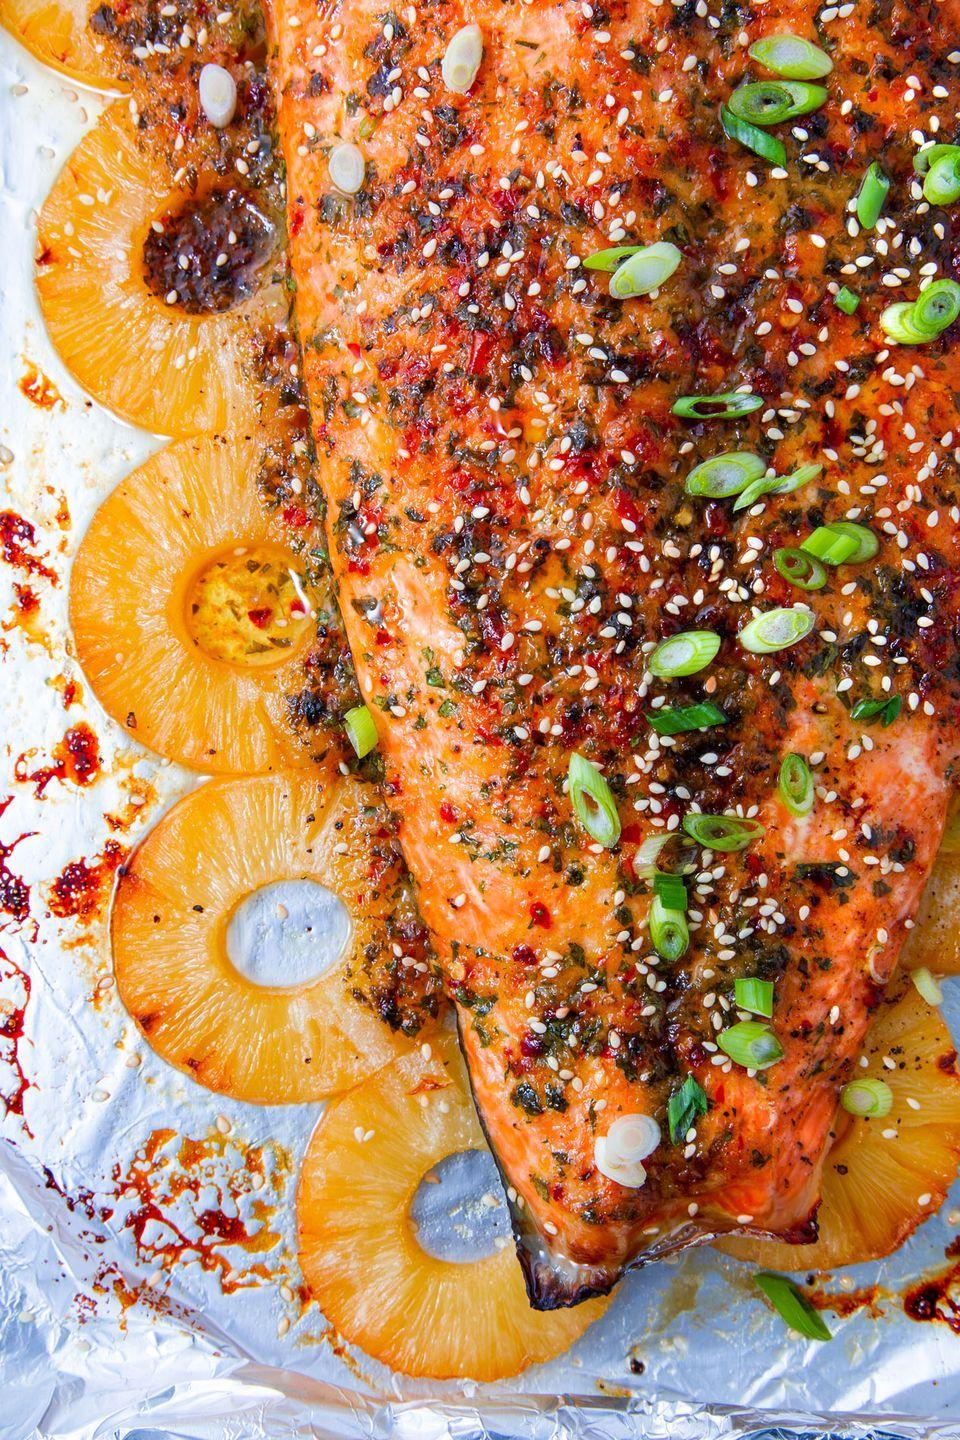 "<p>We never realized how badly we needed this. </p><p>Get the recipe from <a href=""https://www.delish.com/cooking/recipe-ideas/a26728380/baked-pineapple-salmon-recipe/"" rel=""nofollow noopener"" target=""_blank"" data-ylk=""slk:Delish"" class=""link rapid-noclick-resp"">Delish</a>. </p>"